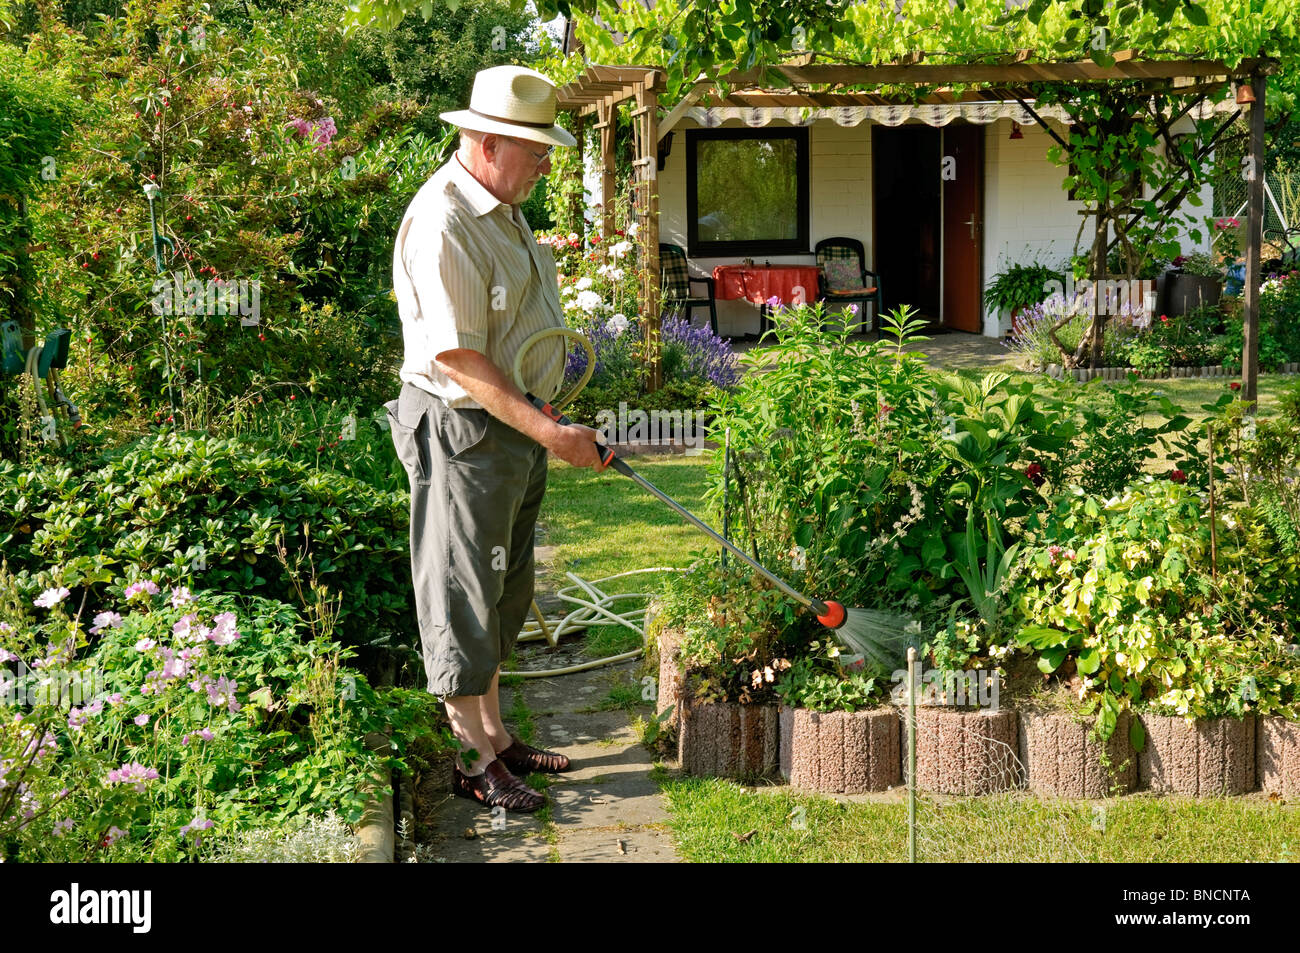 Man 50s 60s watering allotment garden, Germany Stock Photo